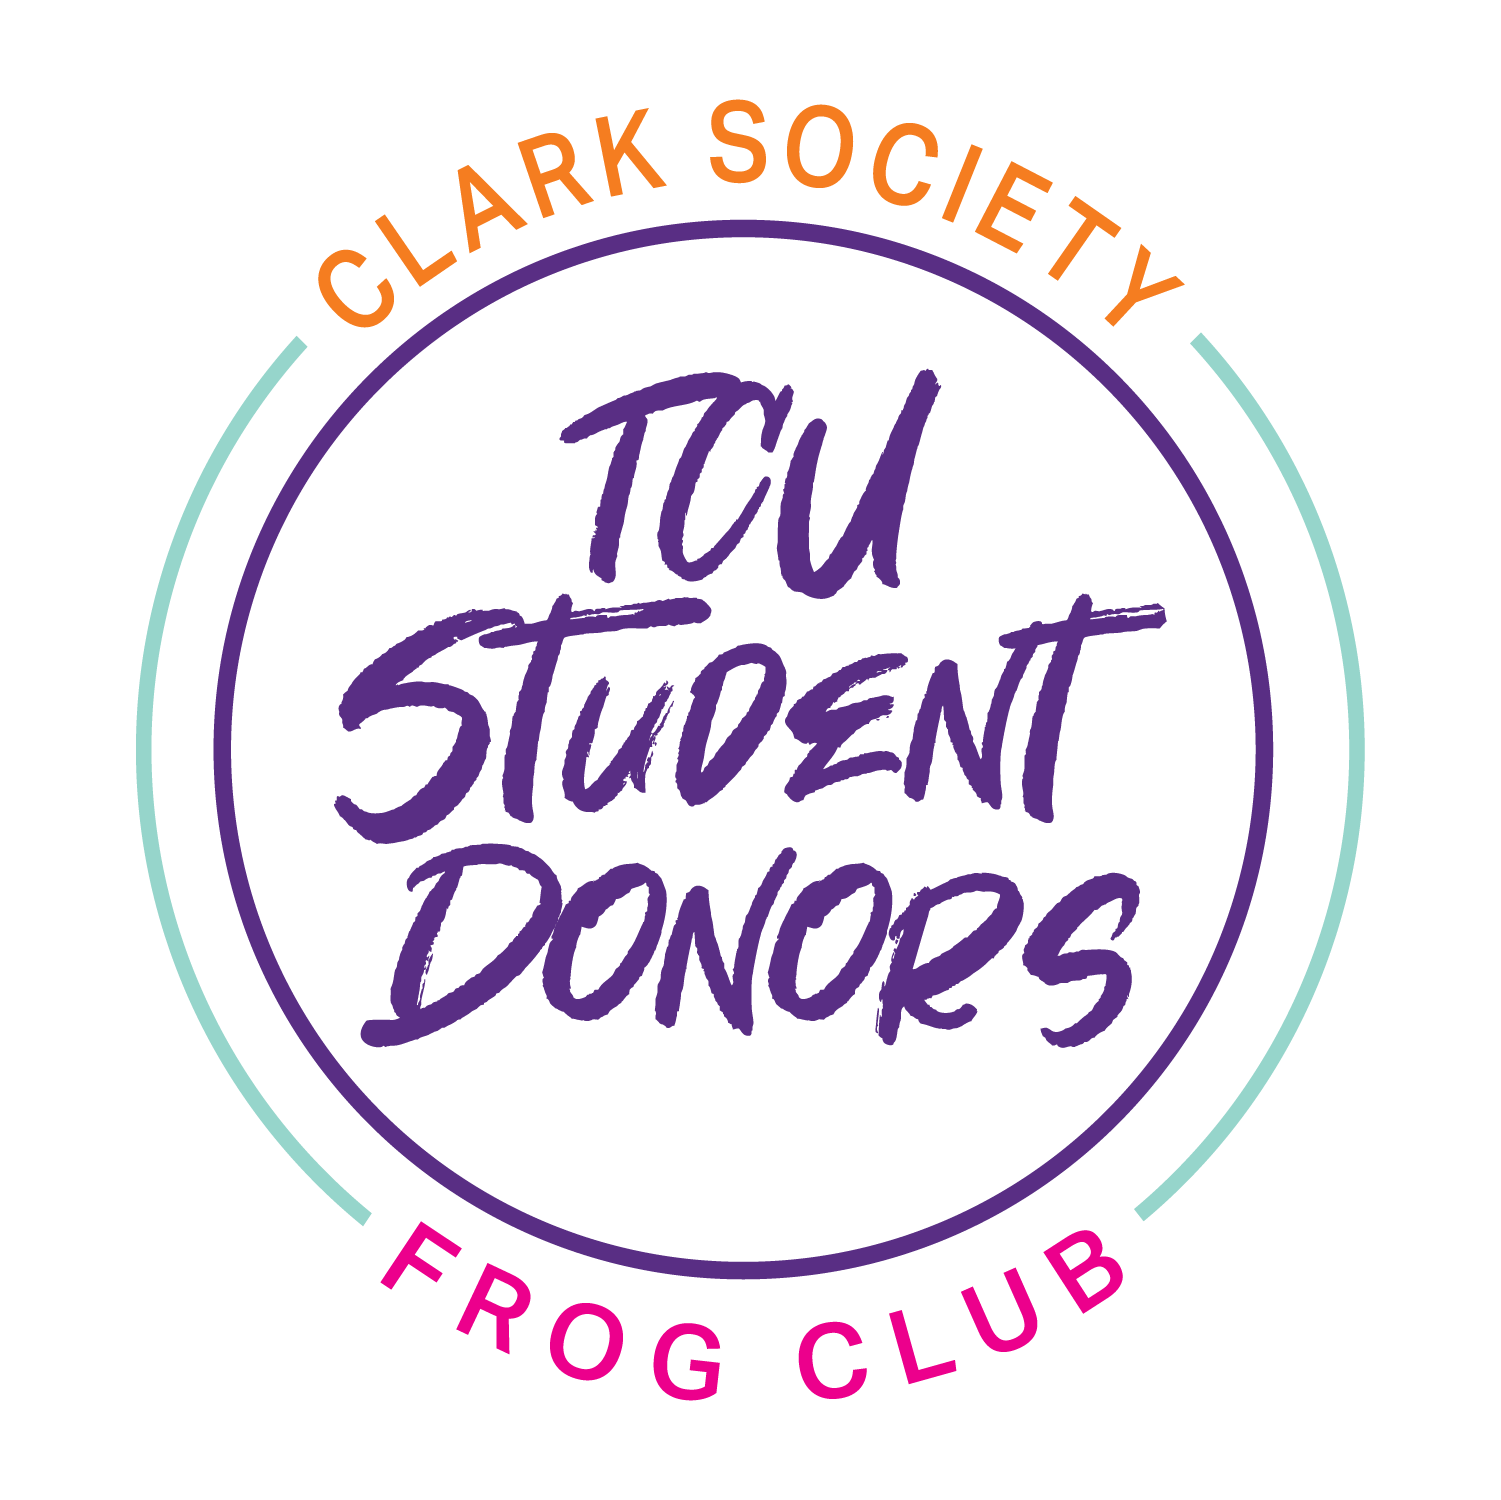 TCU Student Donors   Clark Society and Frog Club